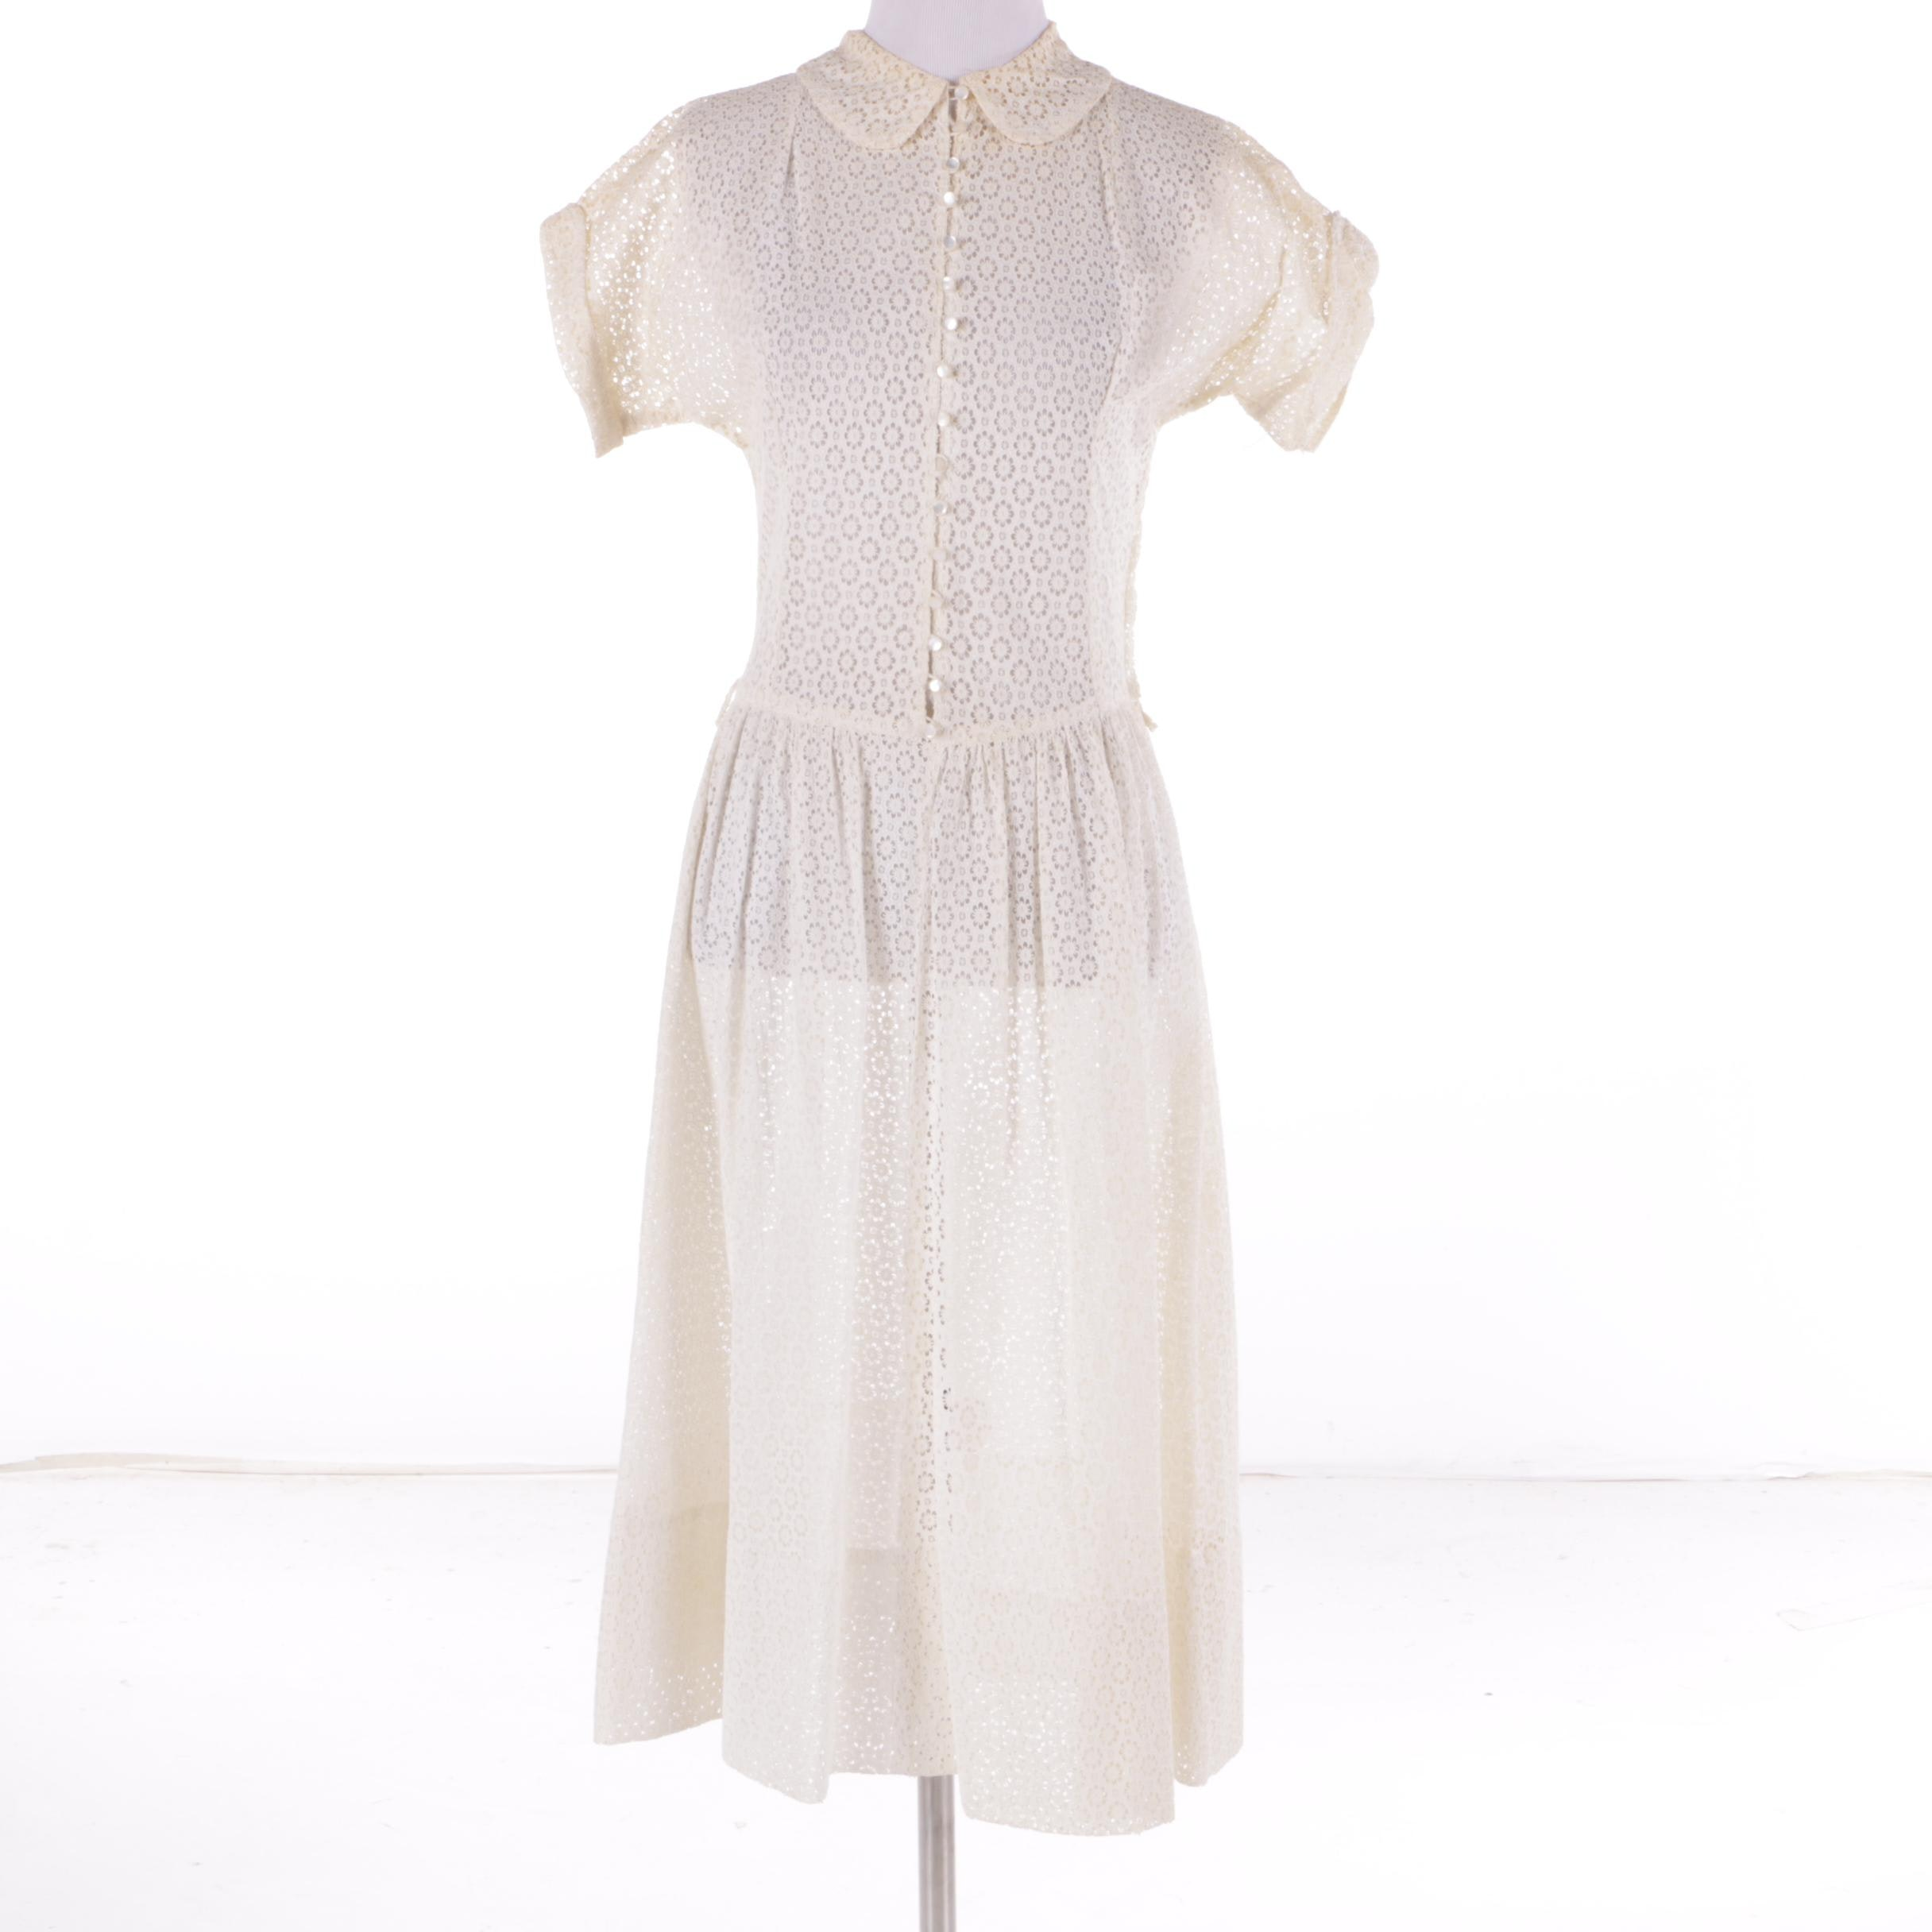 Women's 1950s Vintage Cream-Colored Floral Eyelet Shirt Dress with Collar